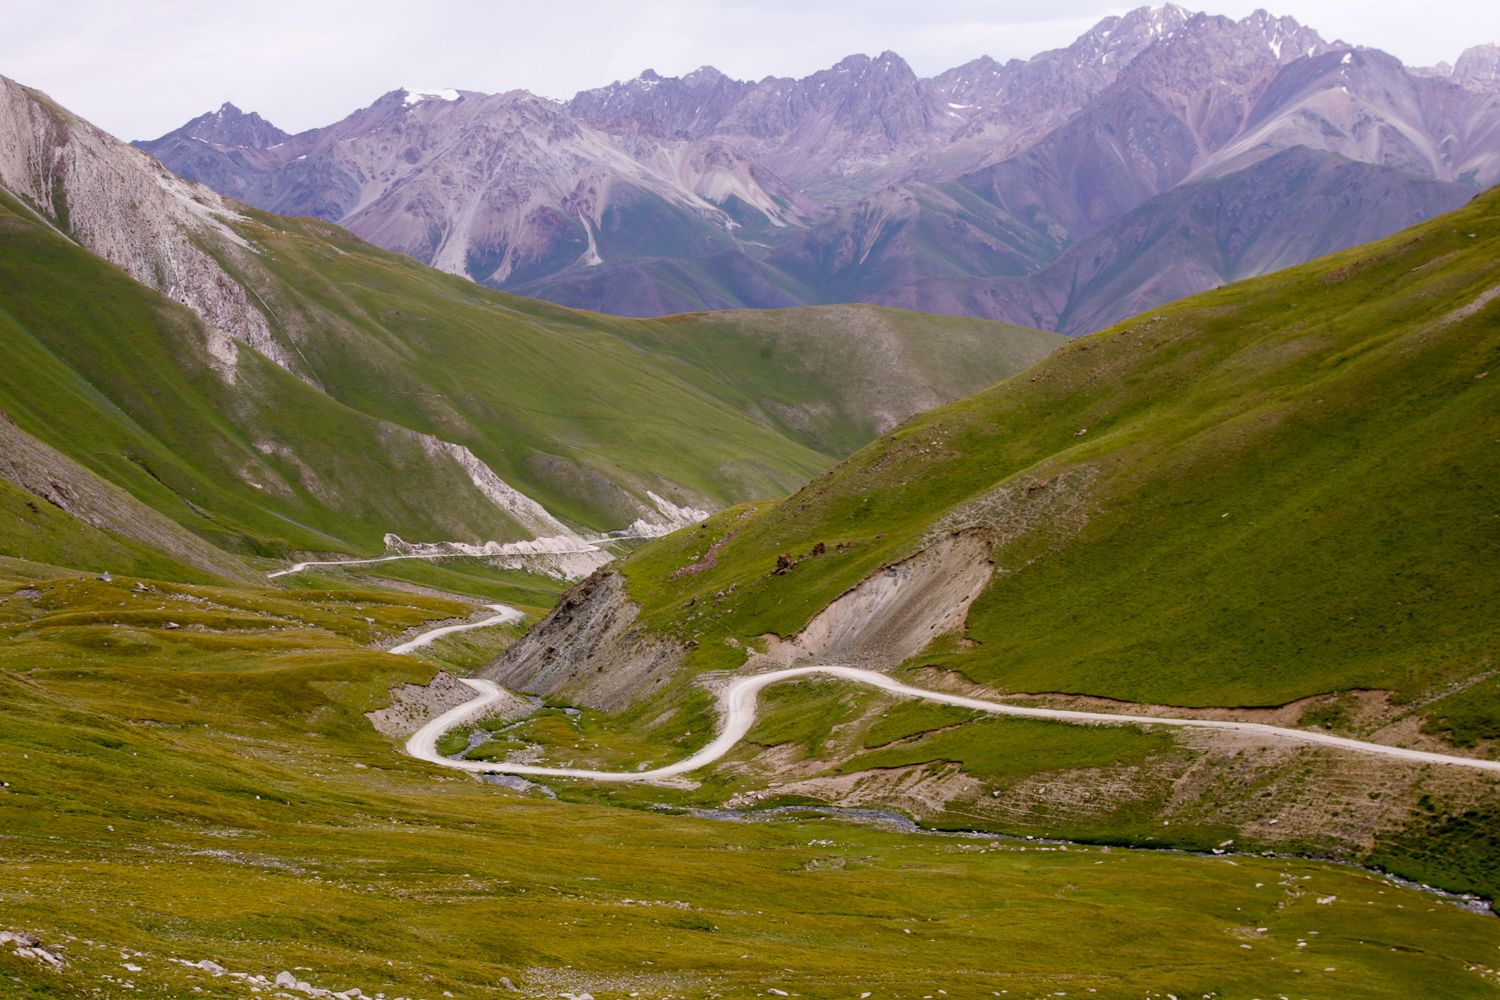 Kyrgyzstan tour, Song Kul to Osh road